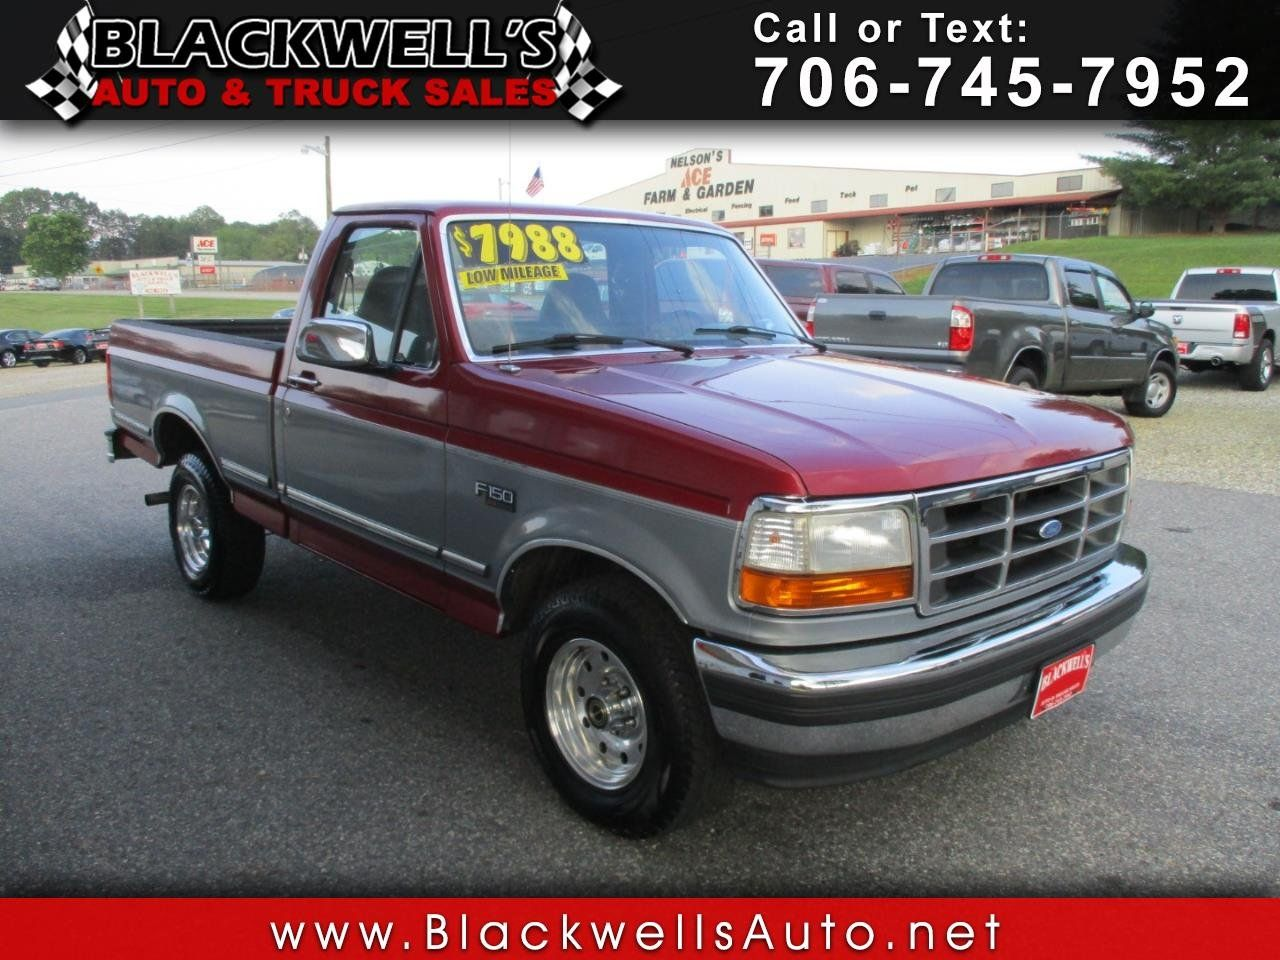 Used 1995 Ford F150 2wd Regular Cab For Sale In Blairsville Ga 30512 Truck Details 516572910 Autotrader Ford F150 Autotrader 1995 Ford F150